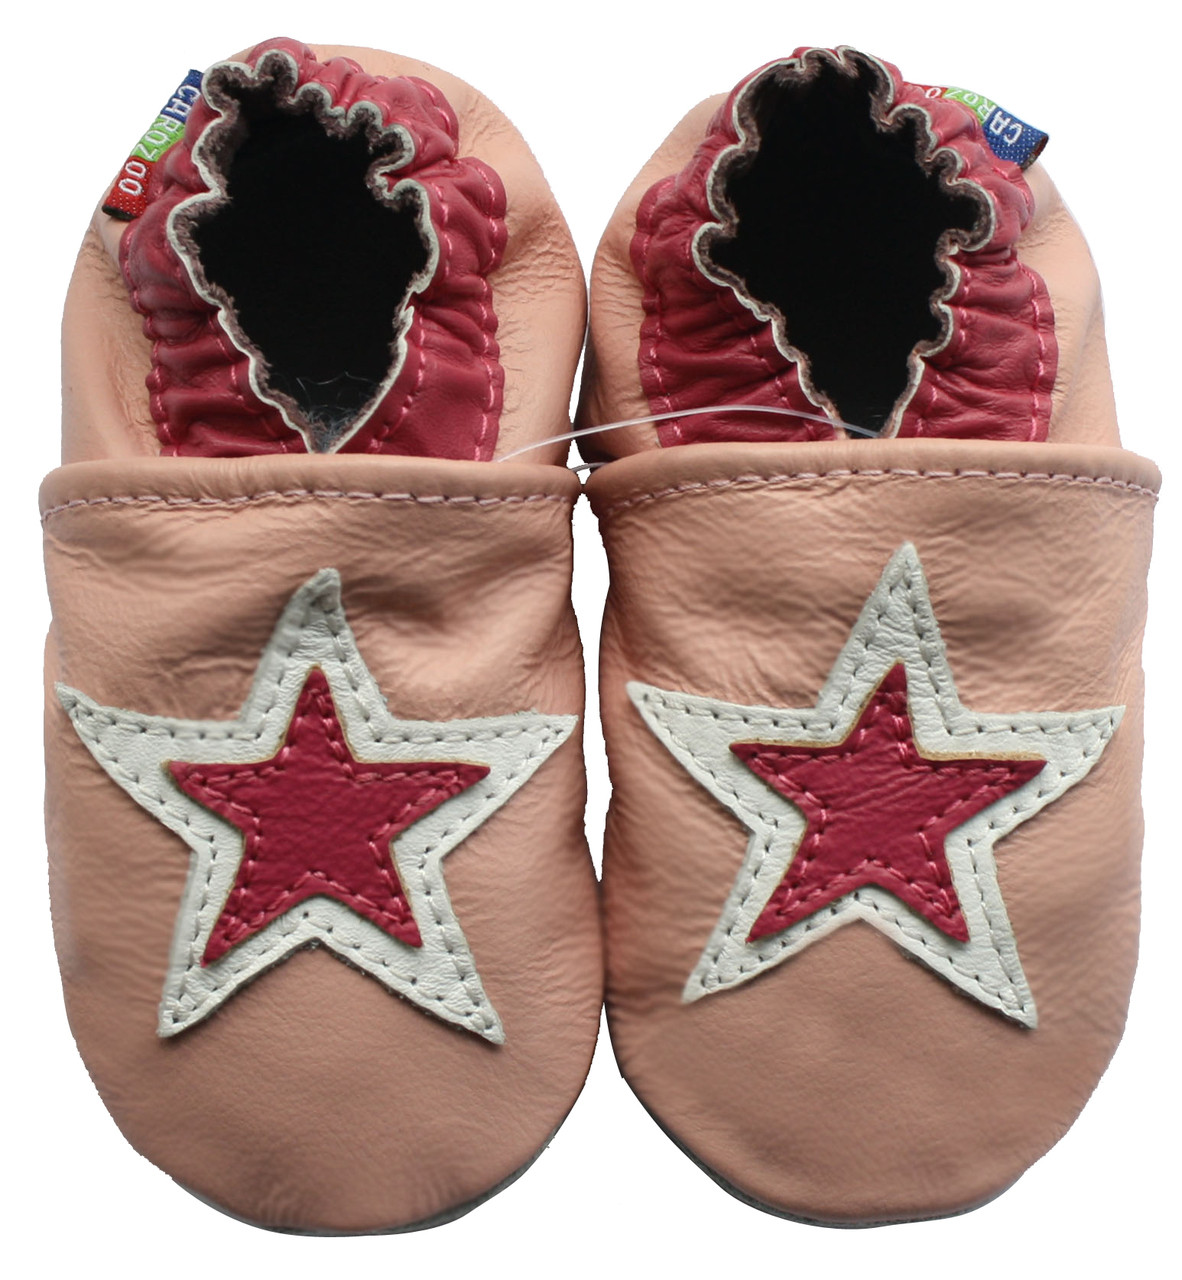 503f2ebbc9d9b0 Carozoo Soft Sole Leather Baby Shoes Double Stars Pink - Shoeszoo